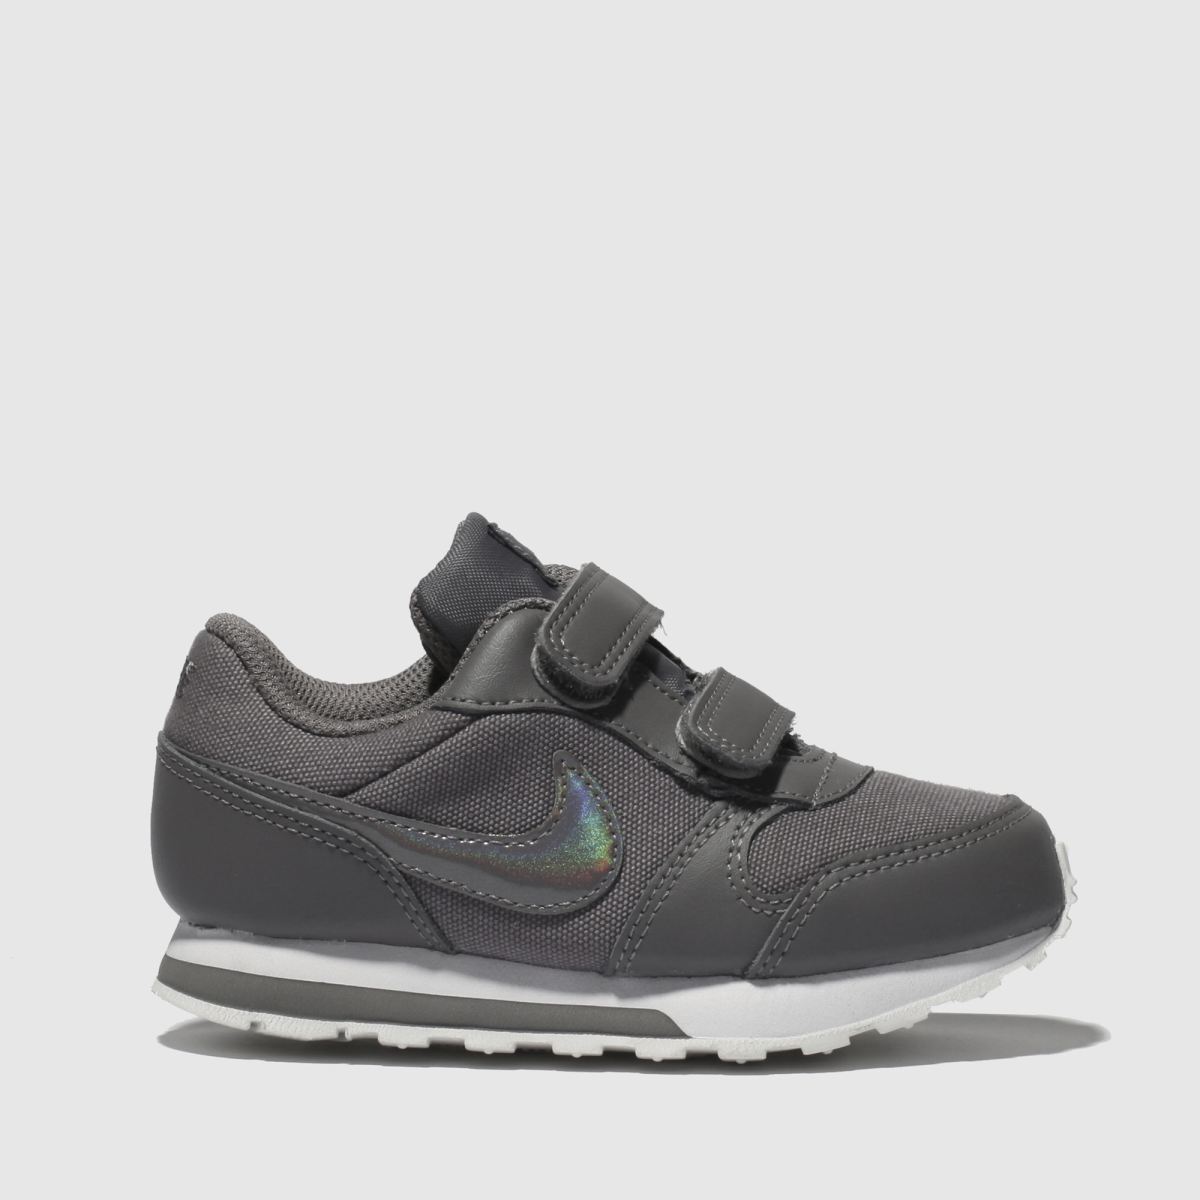 Nike Grey Md Runner 2 Trainers Toddler